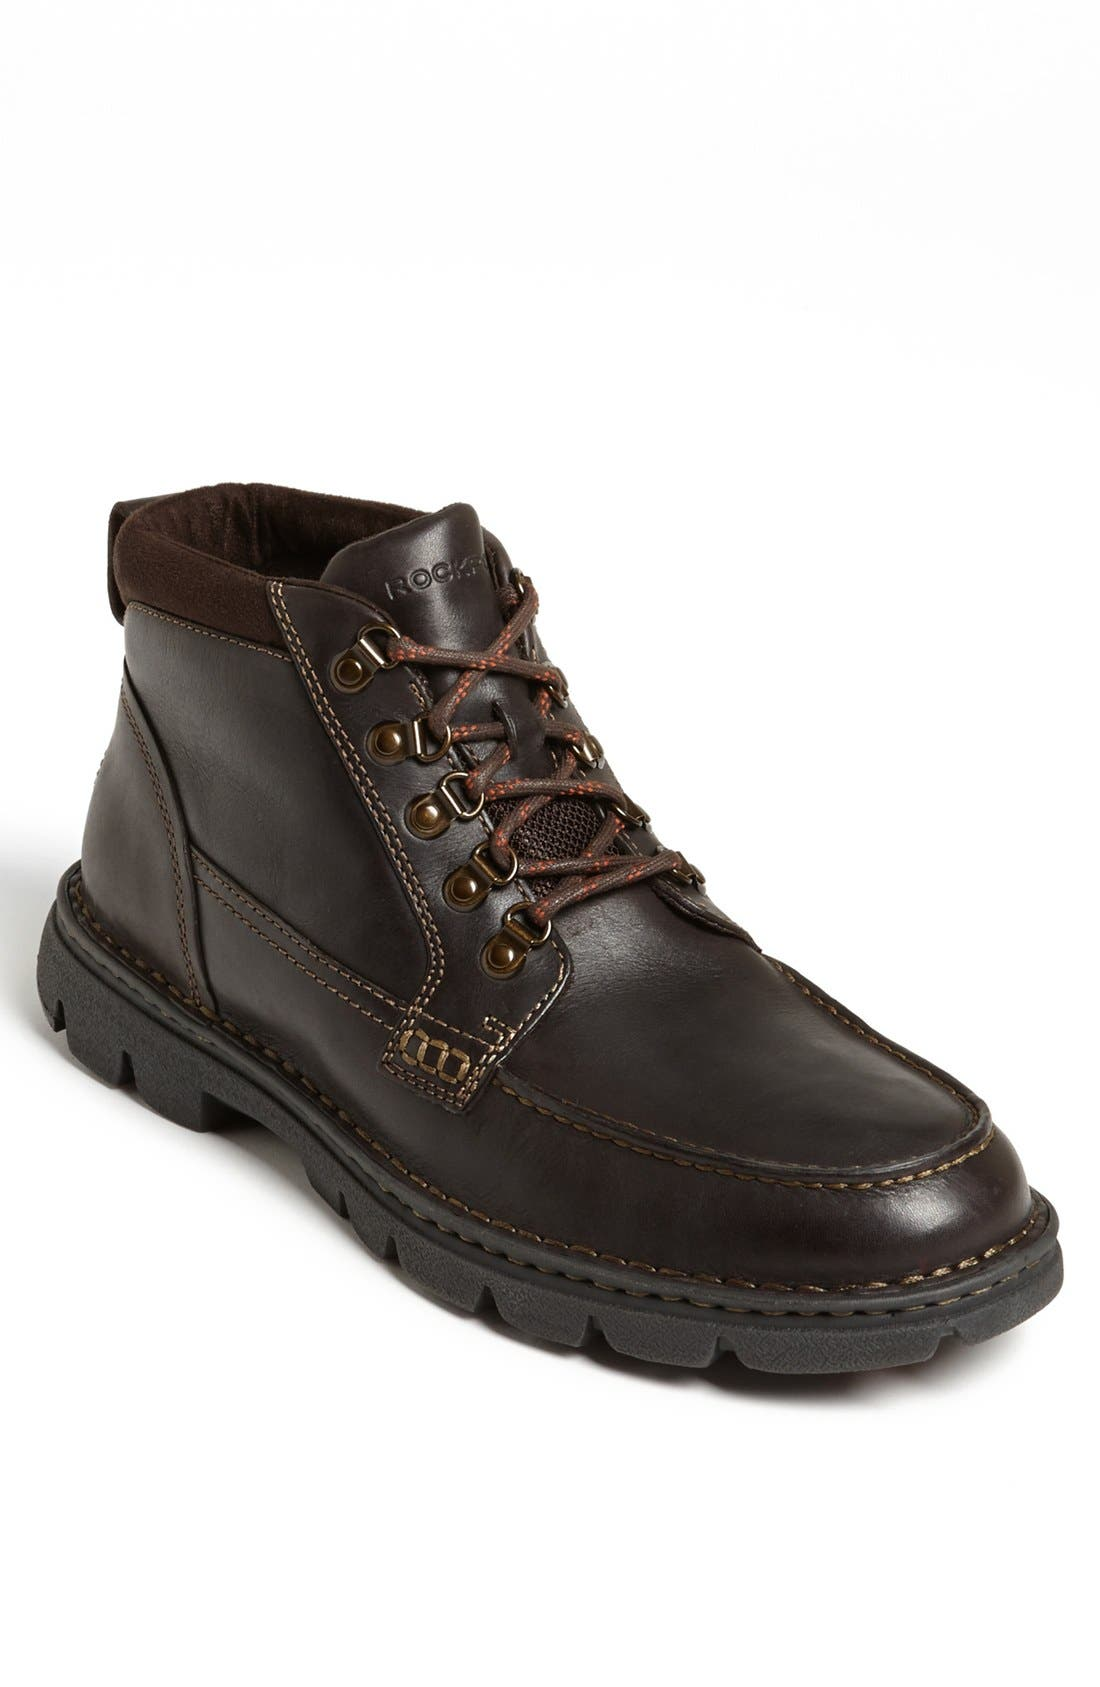 Main Image - Rockport 'RocSports Rugged' Moc Toe Boot